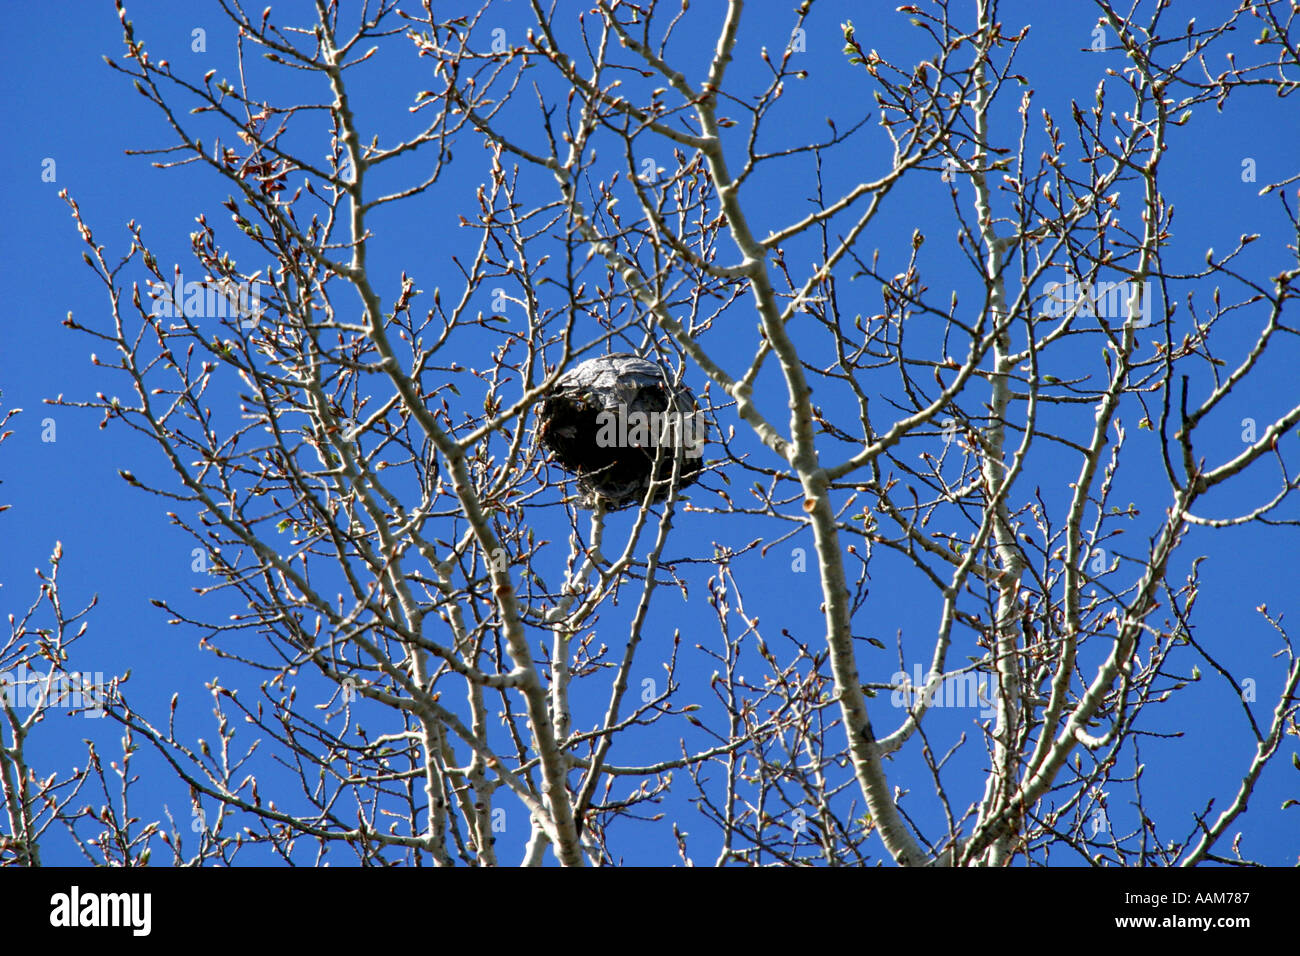 Horizontal Wasp Nest High In A Tree Stock Photo, Royalty Free ...